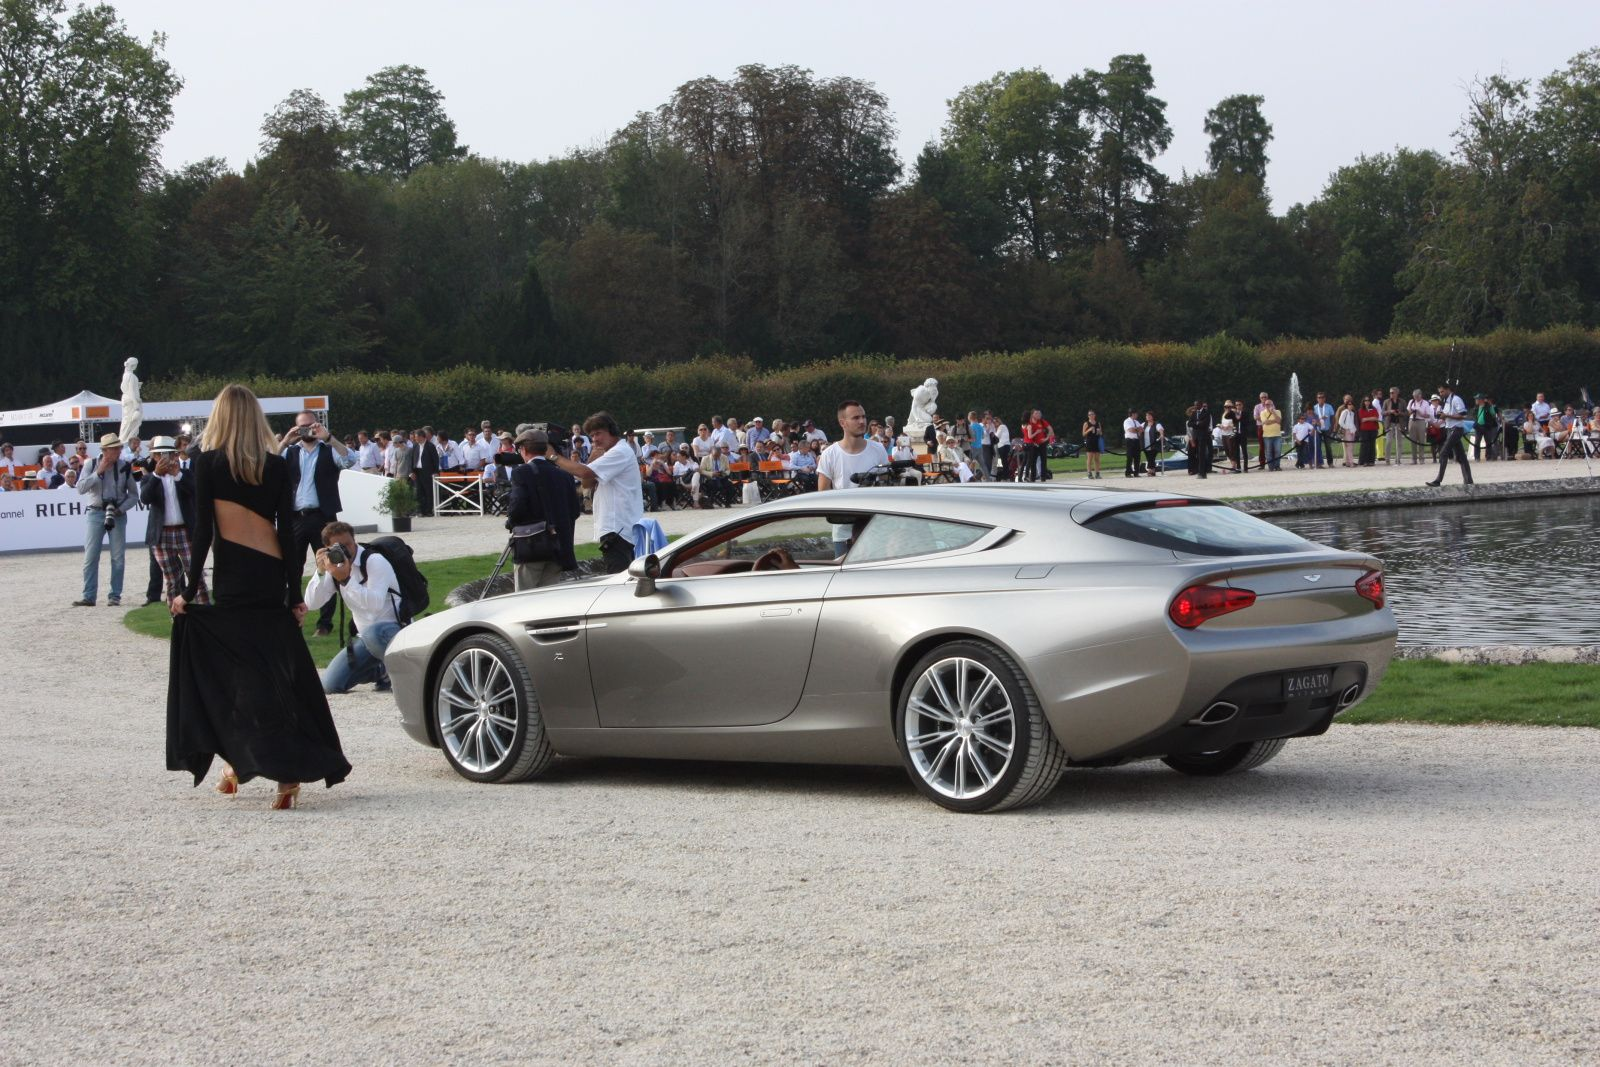 Chantilly Arts & Elegance Richard Mille 2014